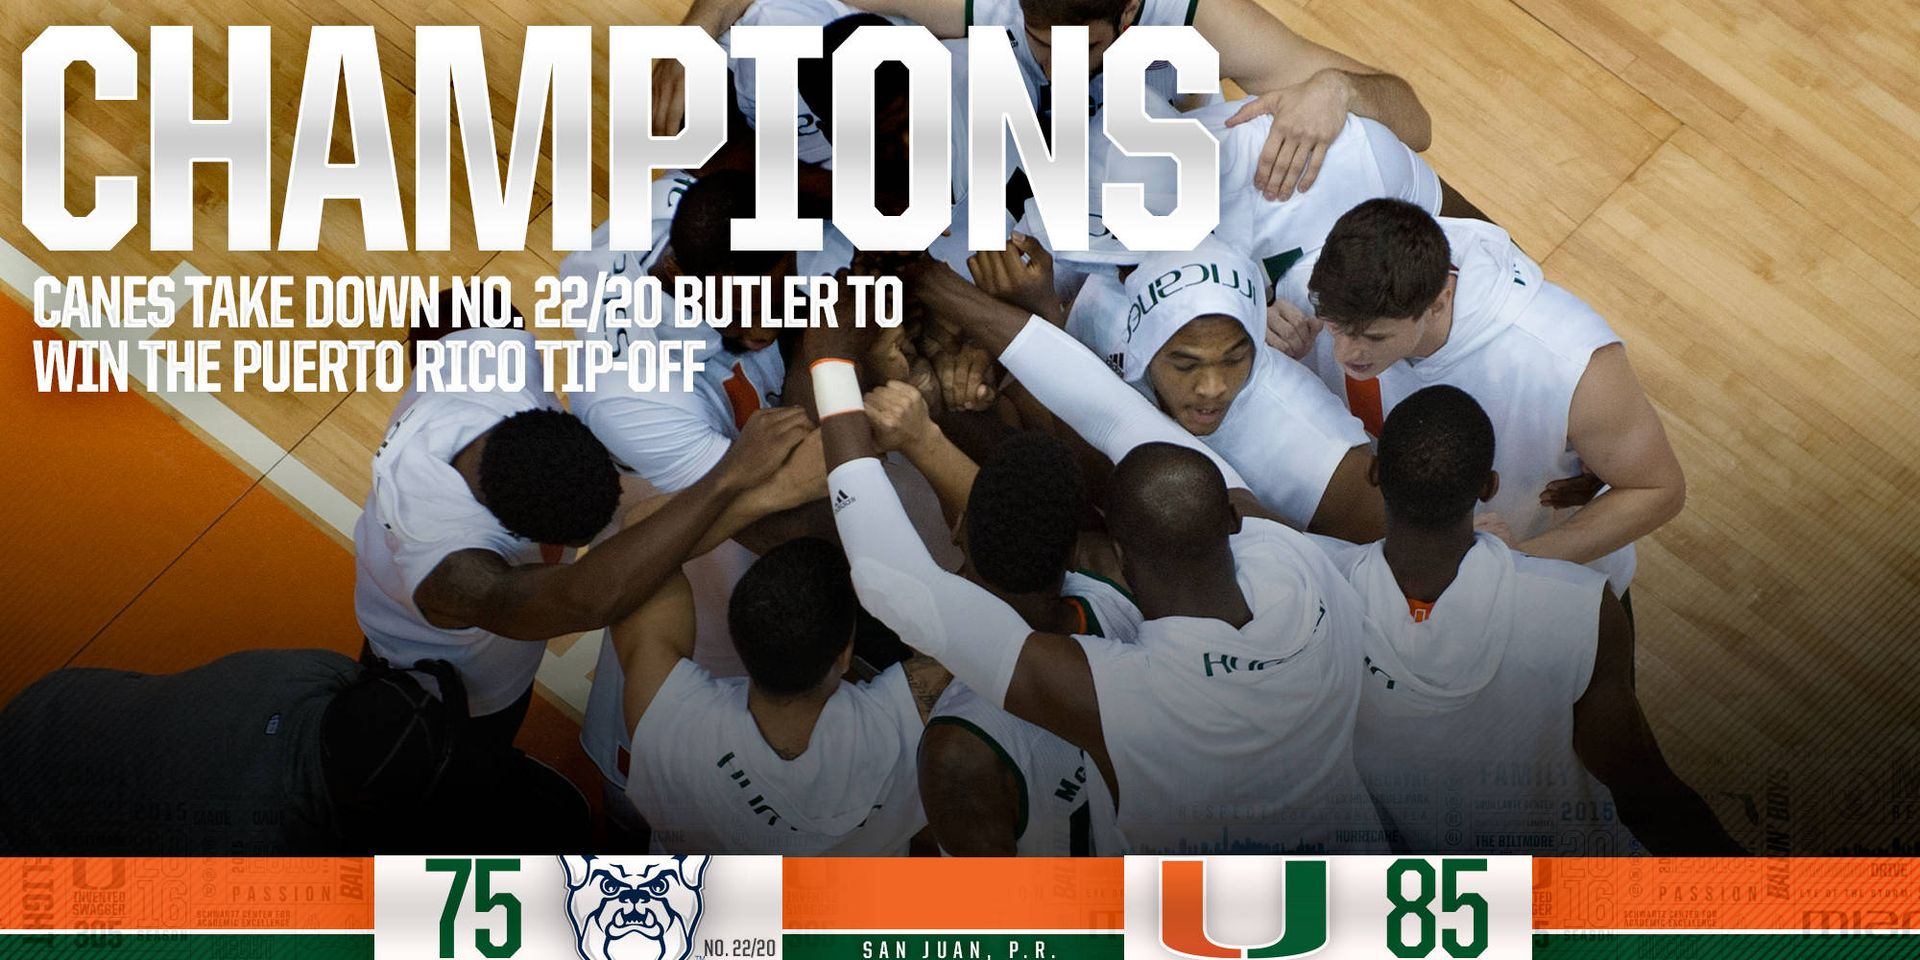 Canes down No. 22/20 Butler in Championship